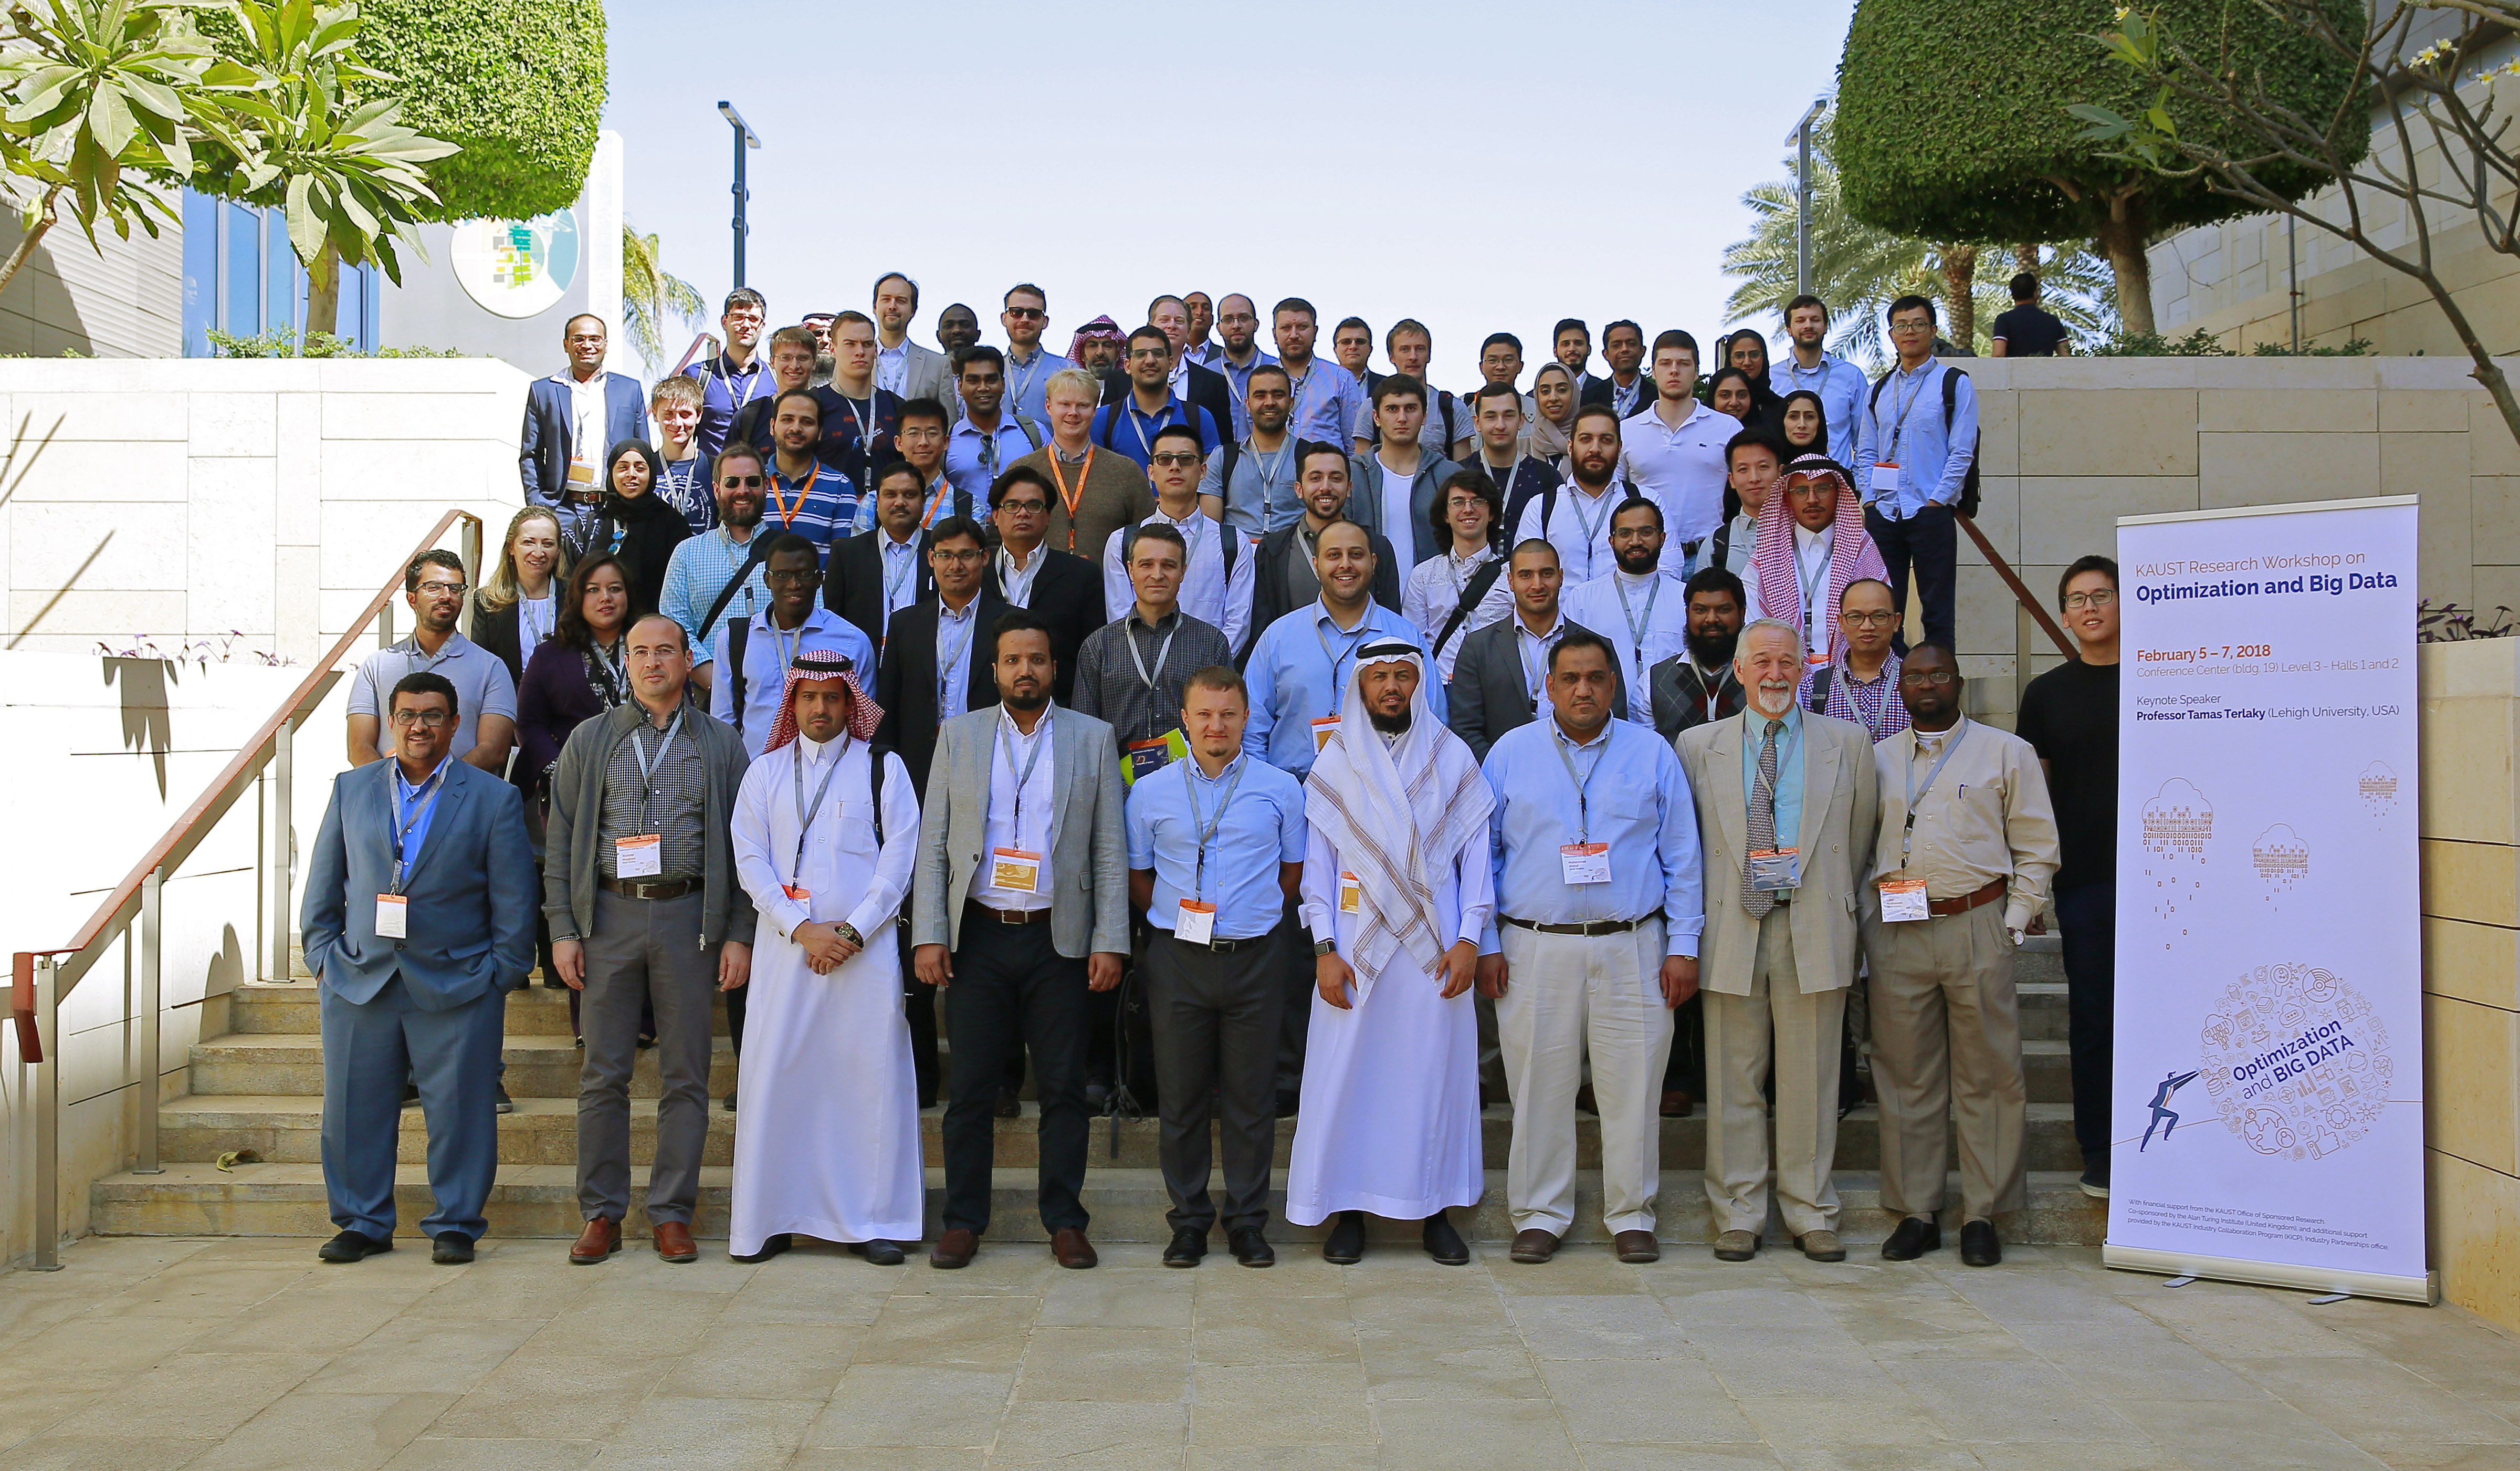 KAUST Research             Workshop on Optimization and Big Data